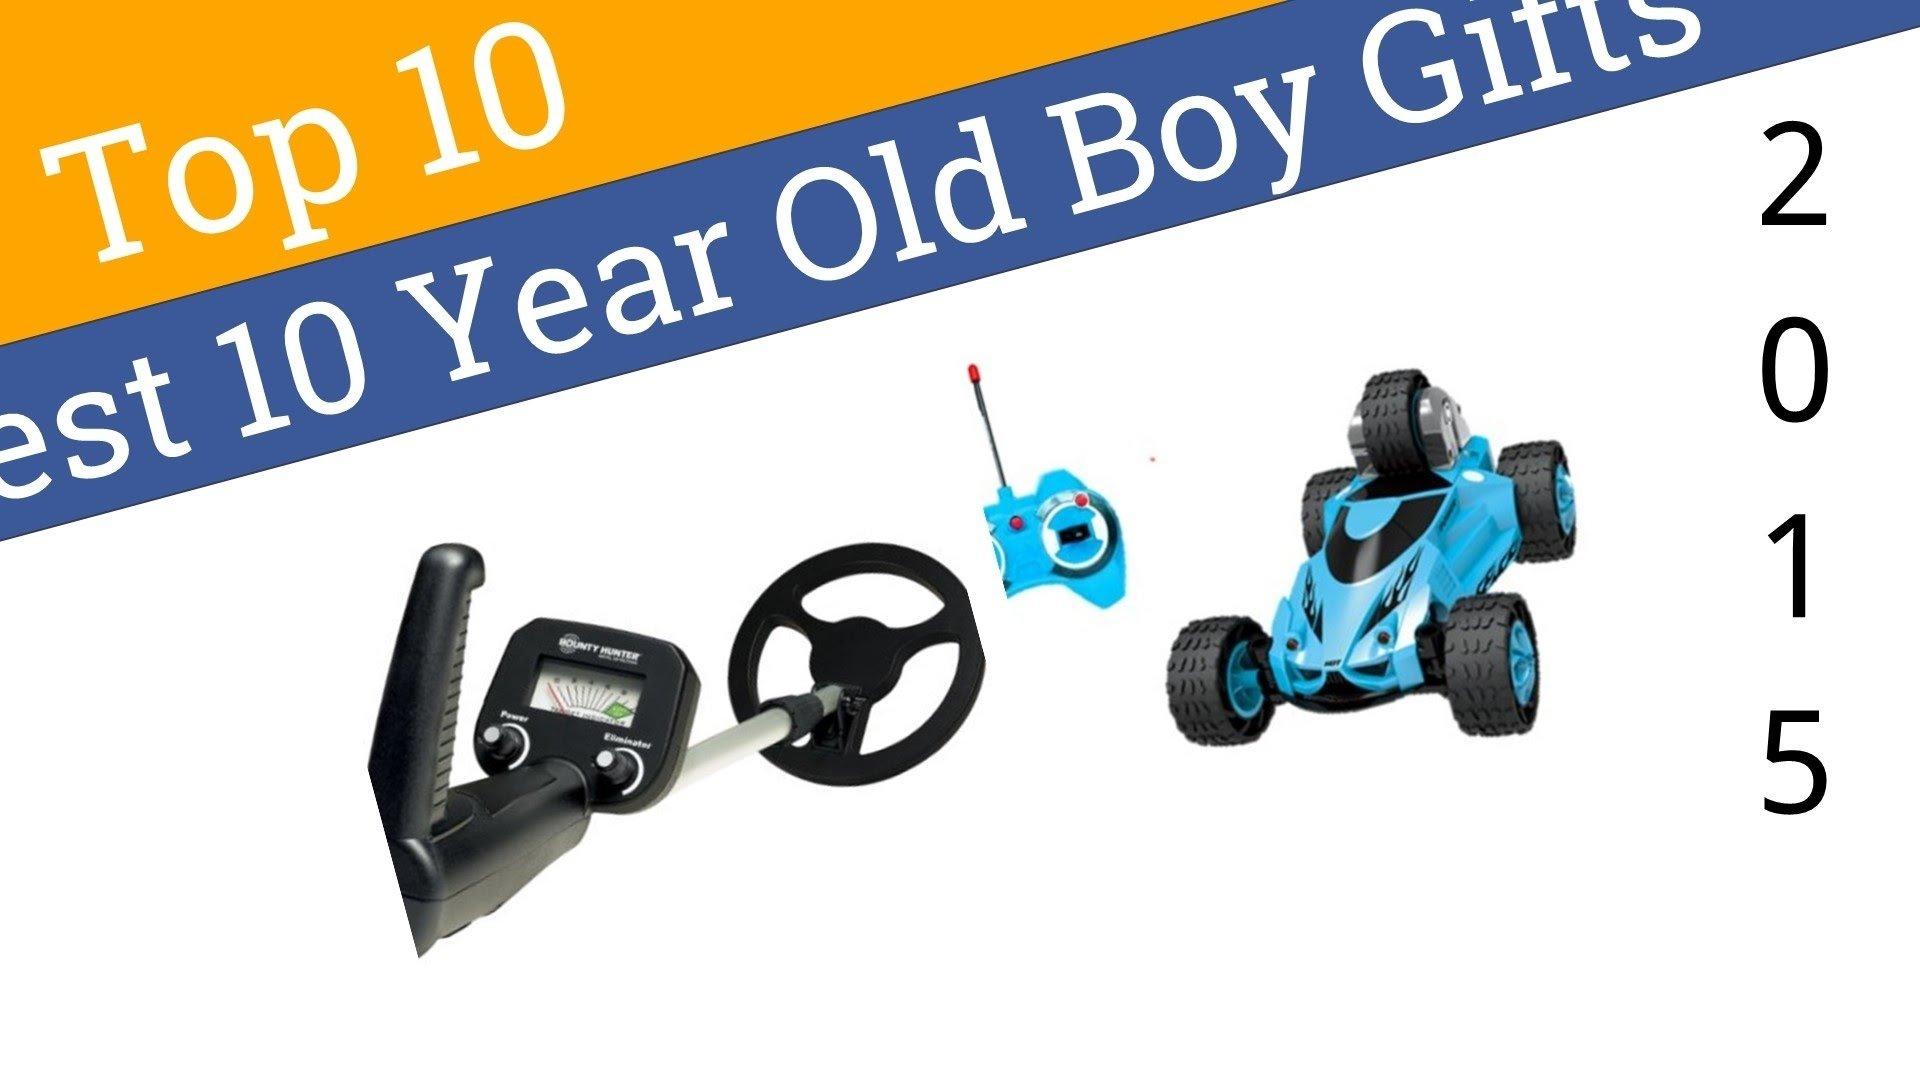 10 best 10 year old boy gifts 2015 - youtube